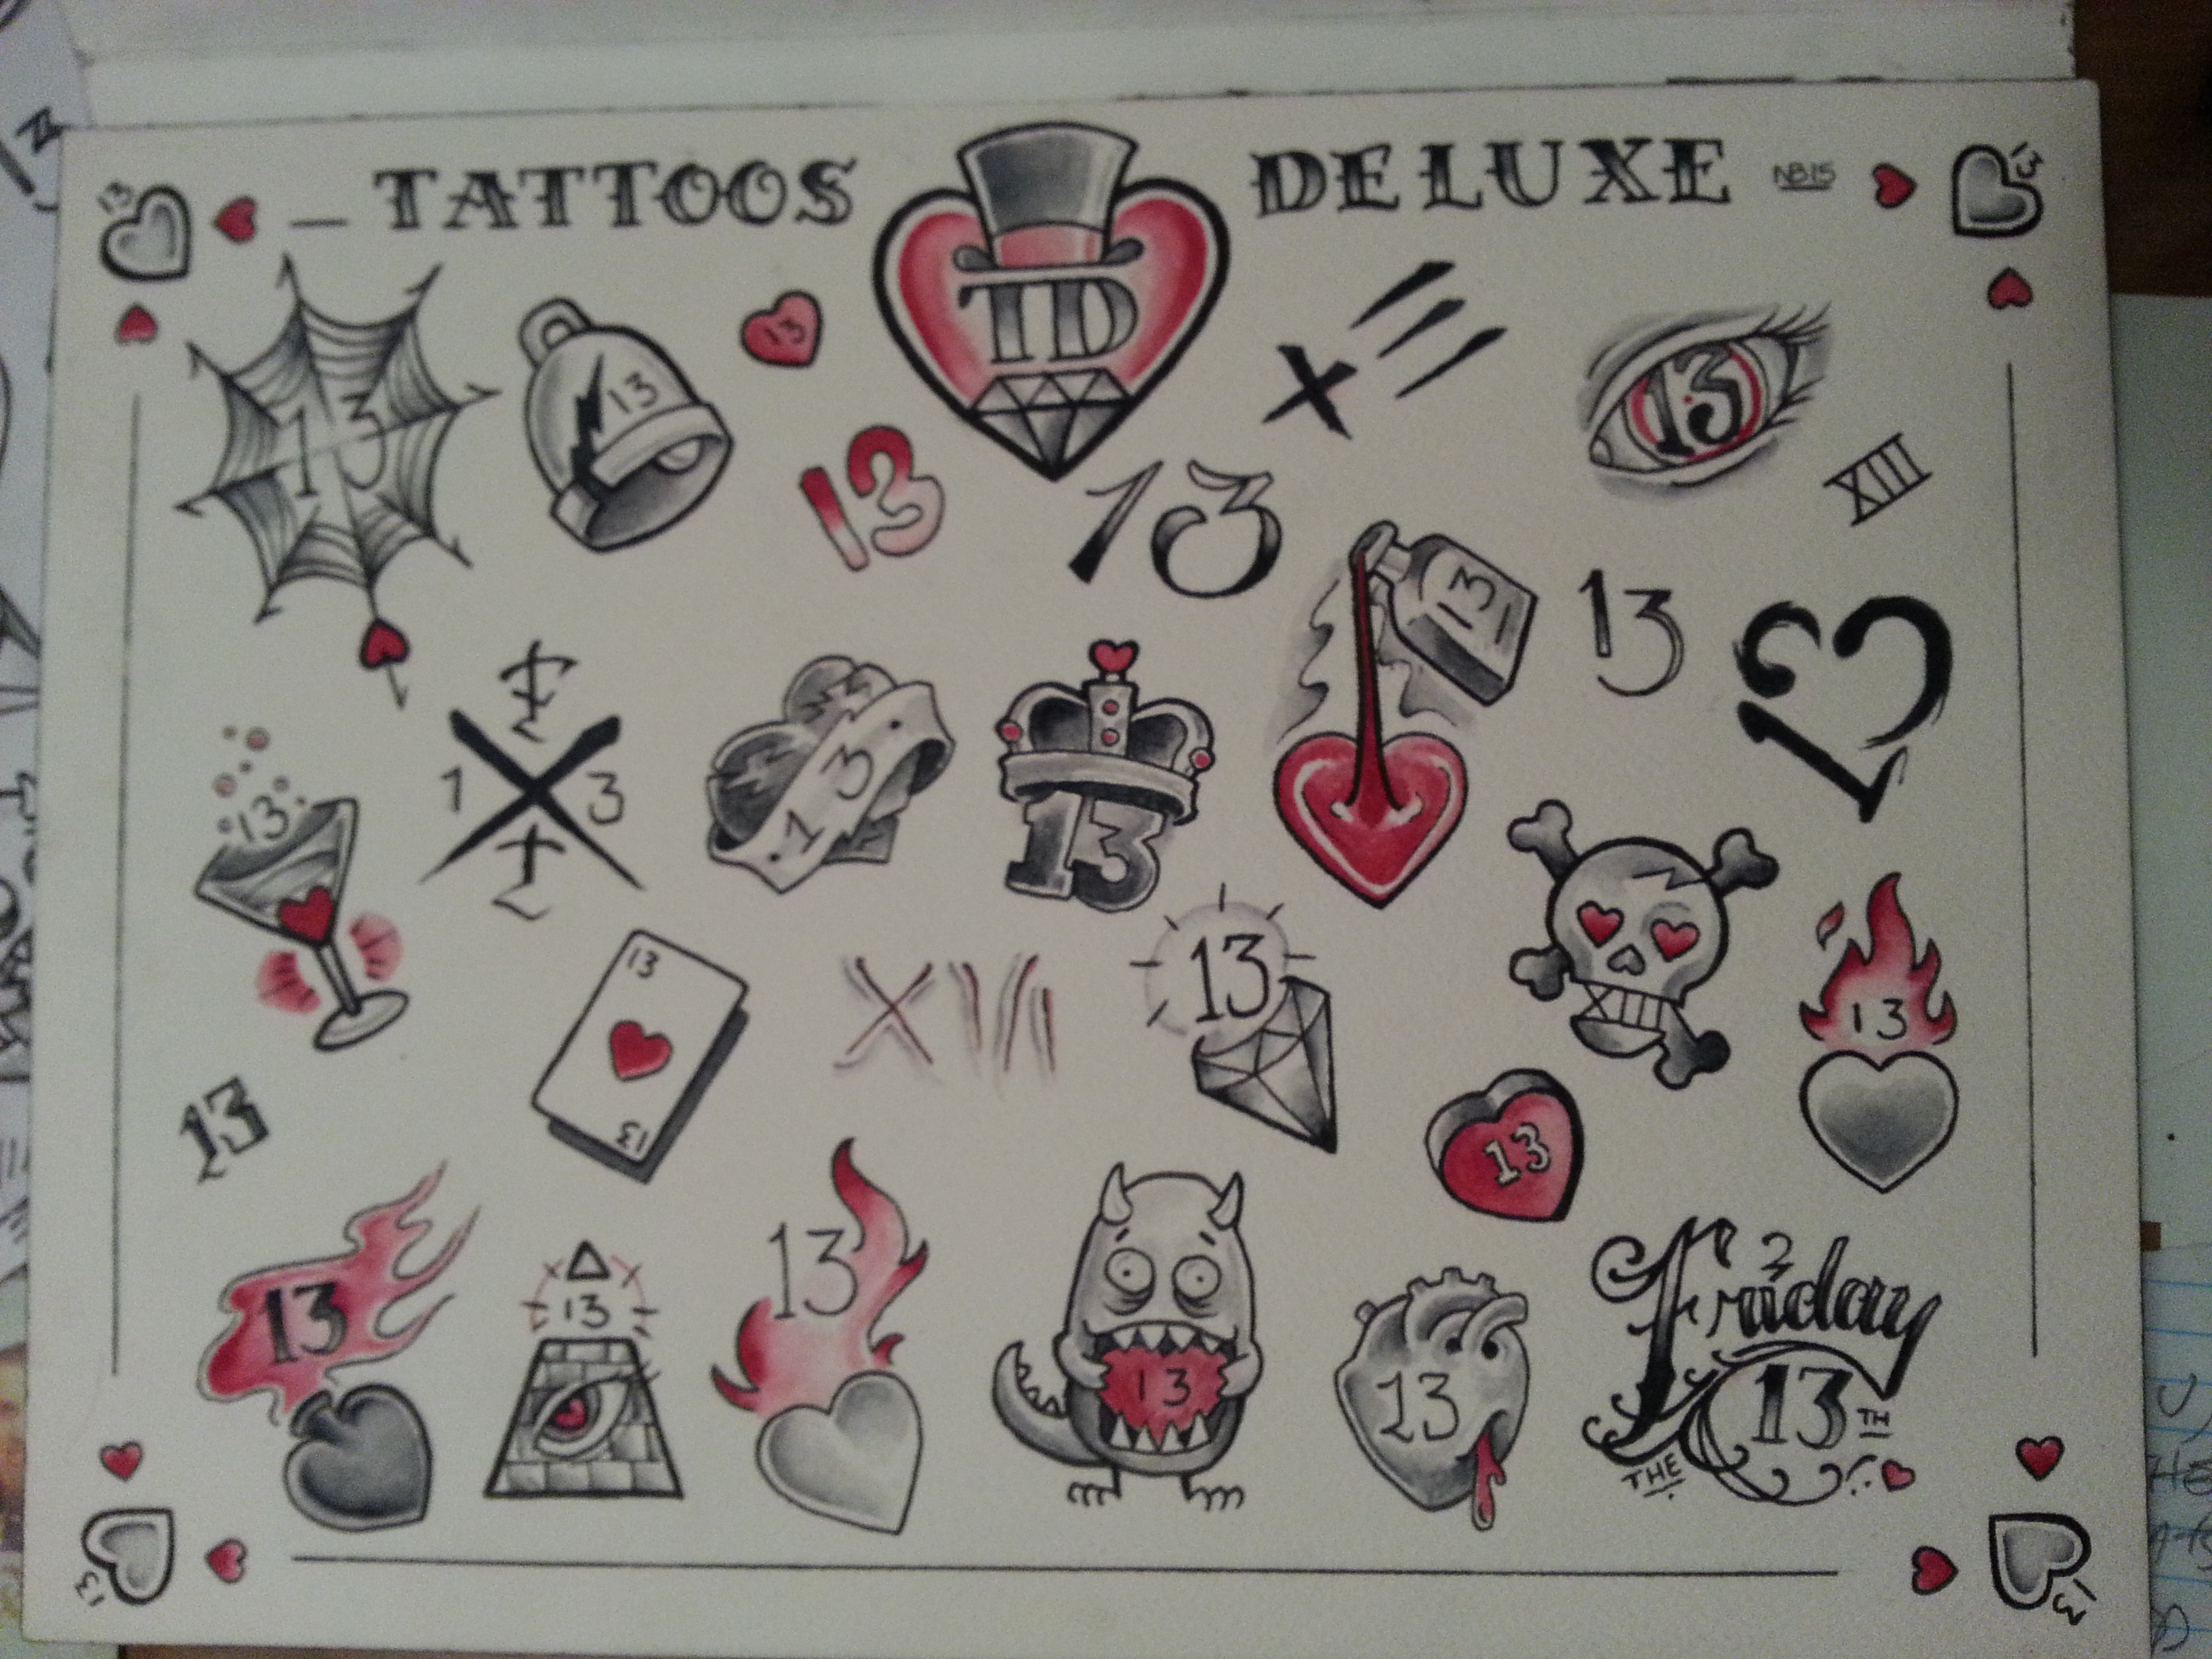 e31d34e15 Friday the 13th Valentine's Edition. Posted in Tattoo Artists ...